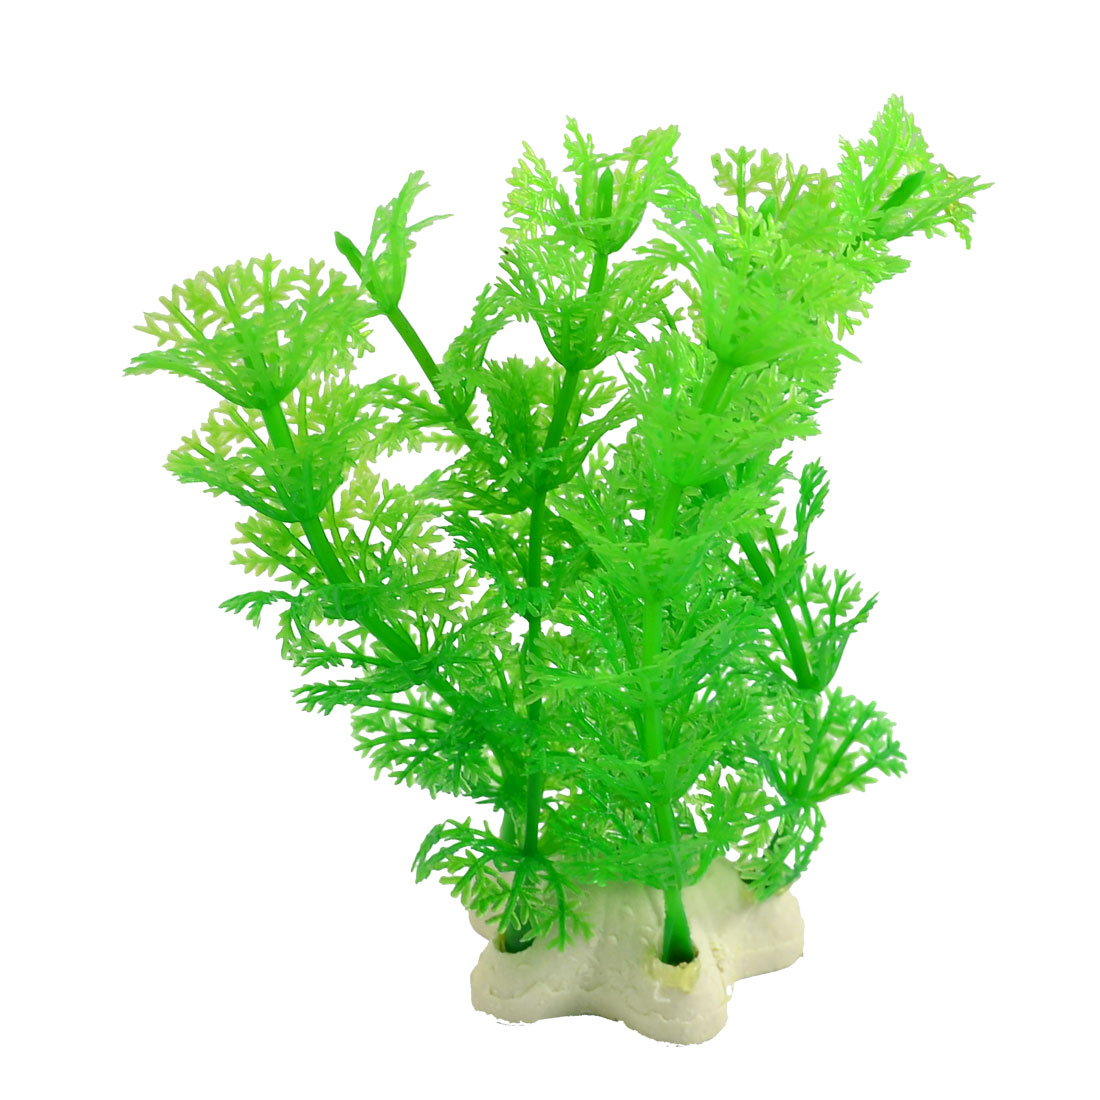 "Fish Tank 4.7"" High Emulational Green Snowflake Leaf Plant Adorn"